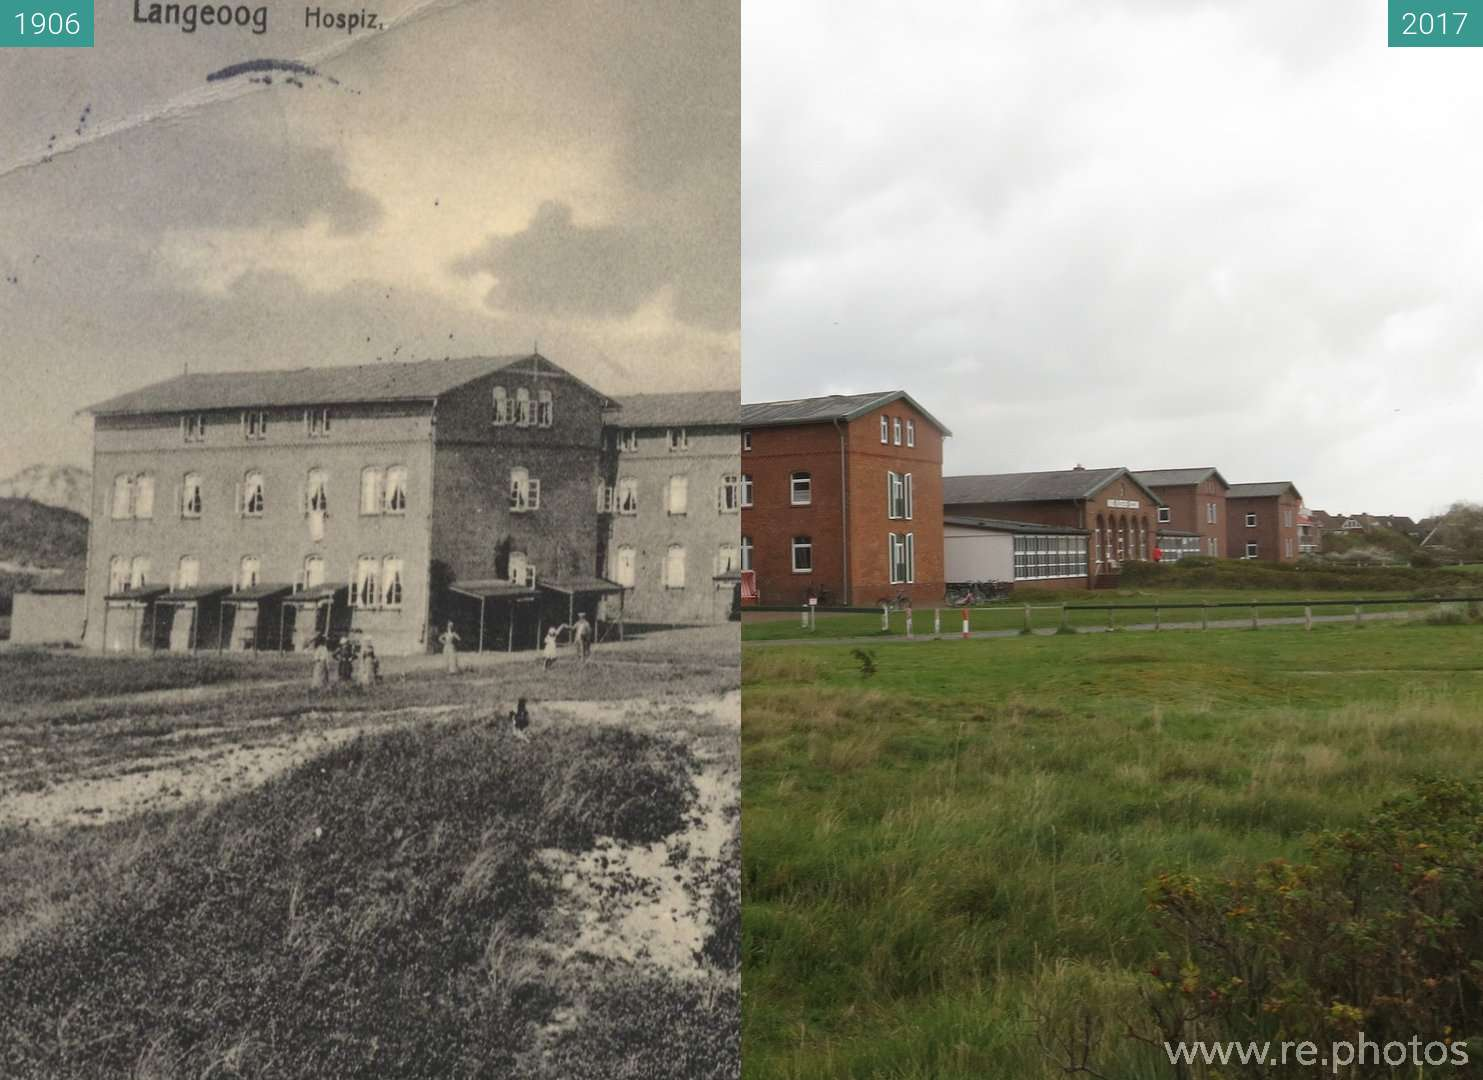 Before and After Haus Kloster Loccum 1906 & 2017 Oct 04